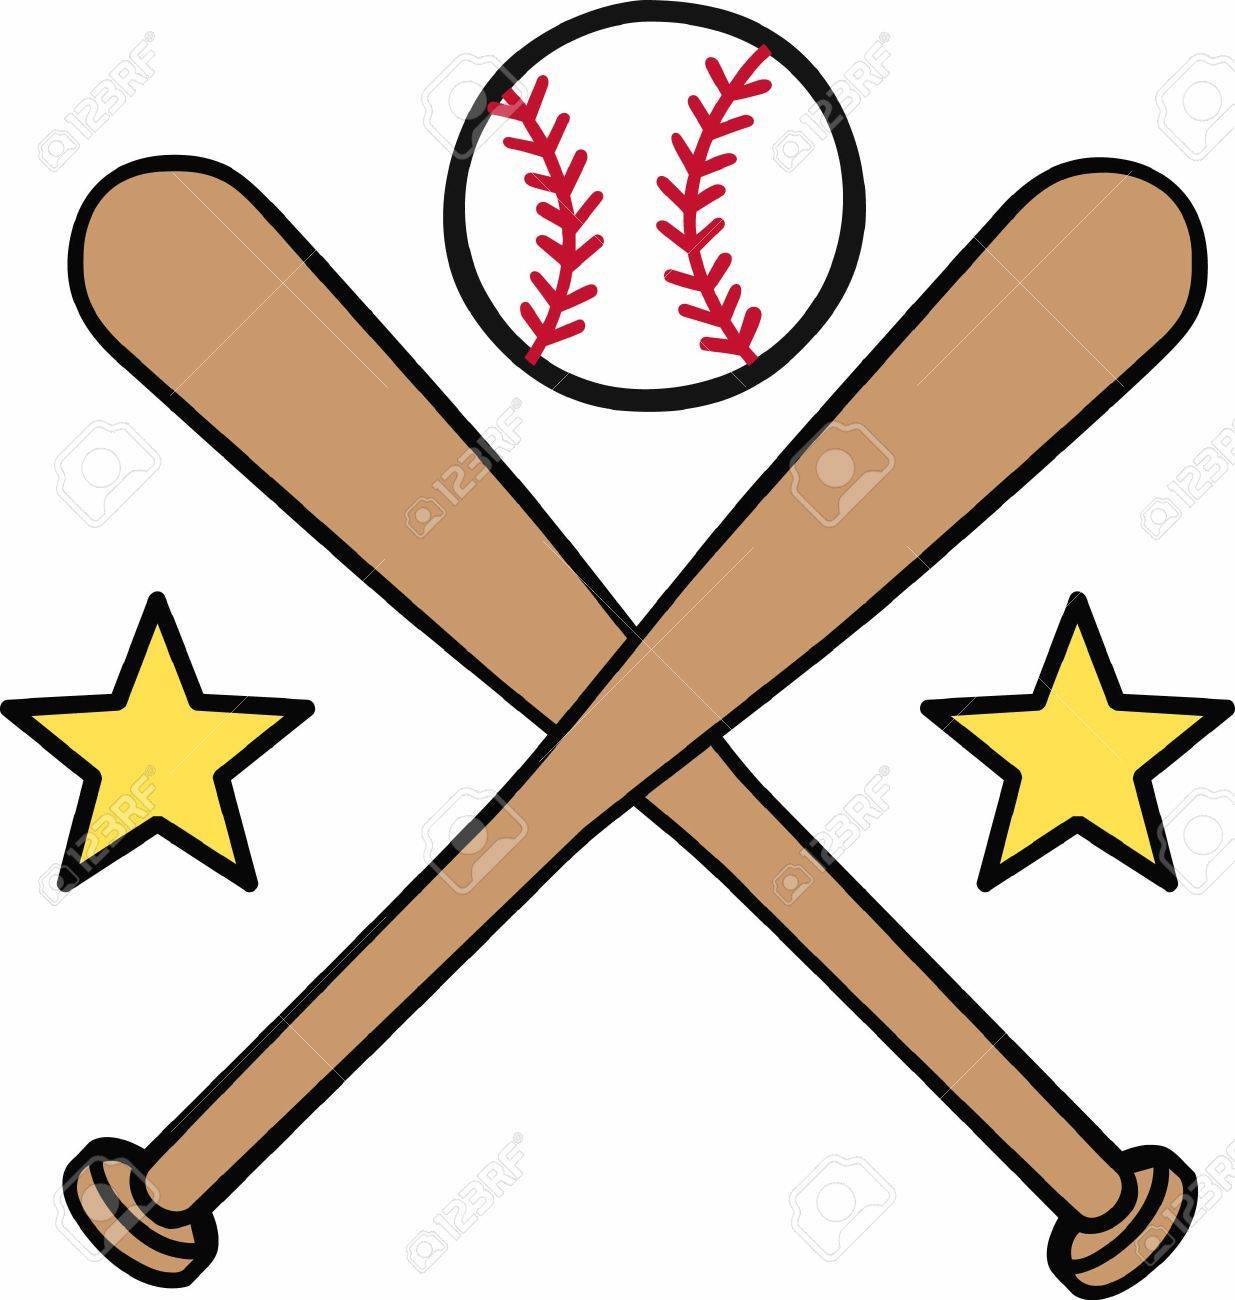 Crossed baseball bats with yellow stars and a ball on top logo..